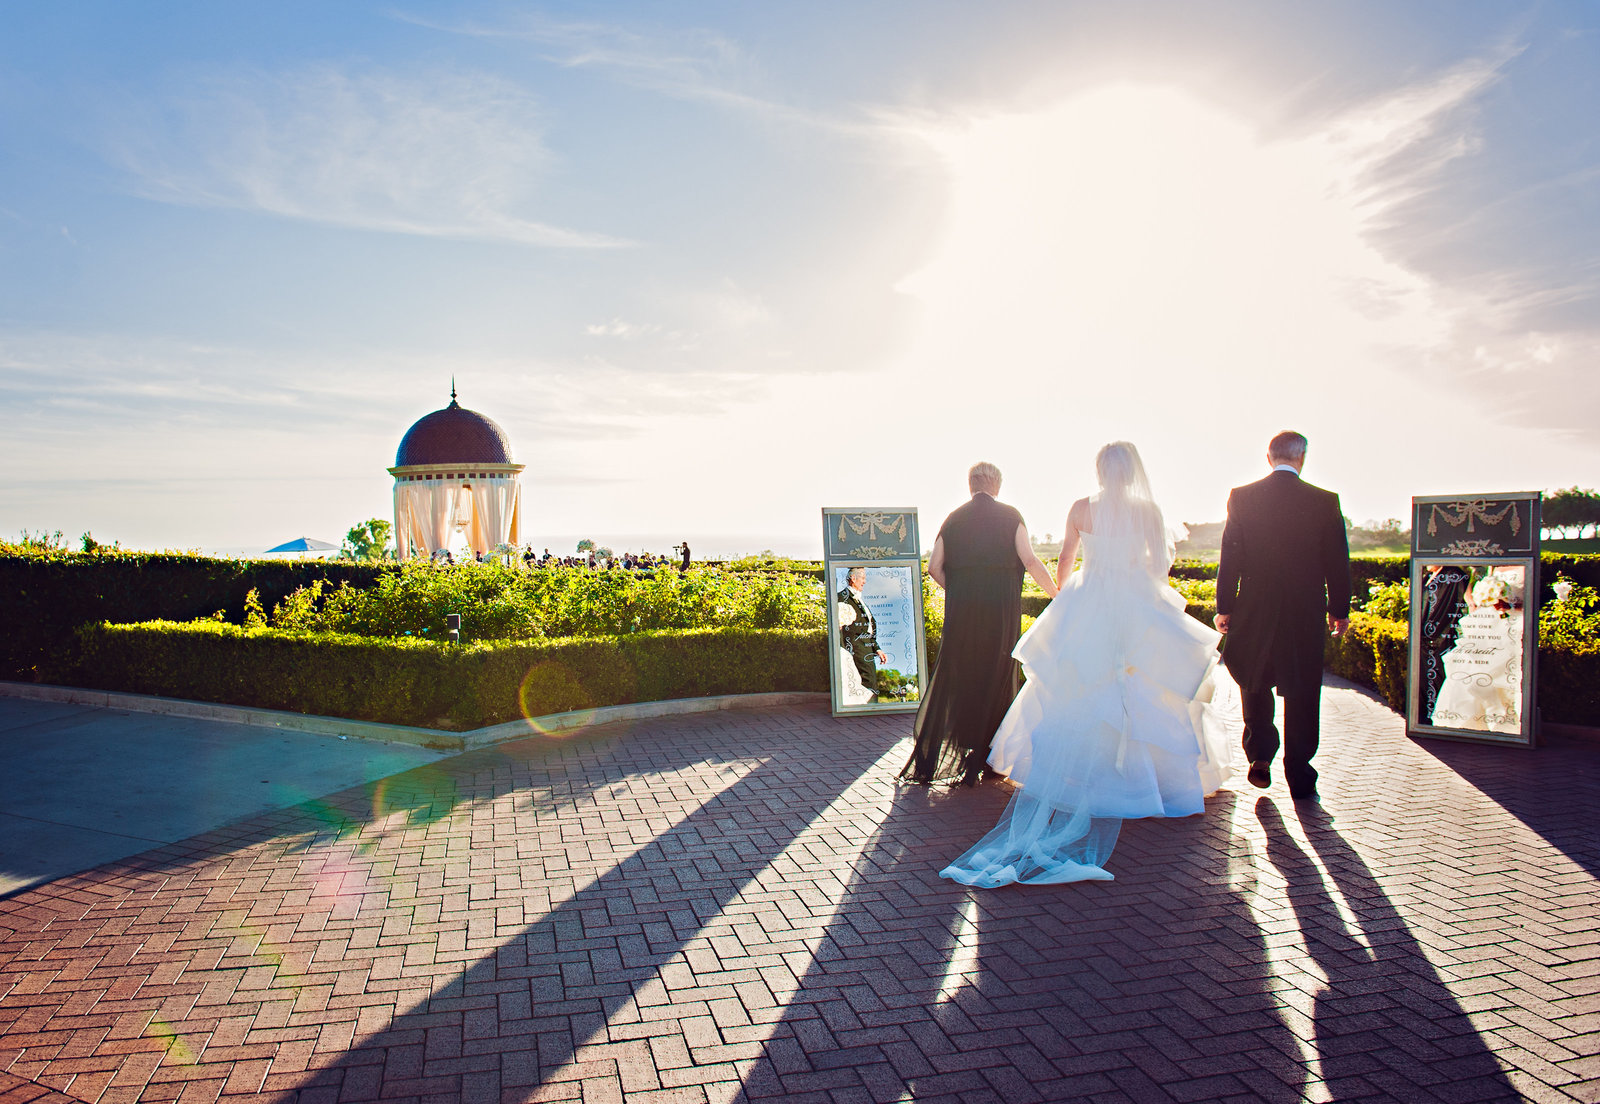 Wedding photography at Pelican Hill Resort by inGRACE photography